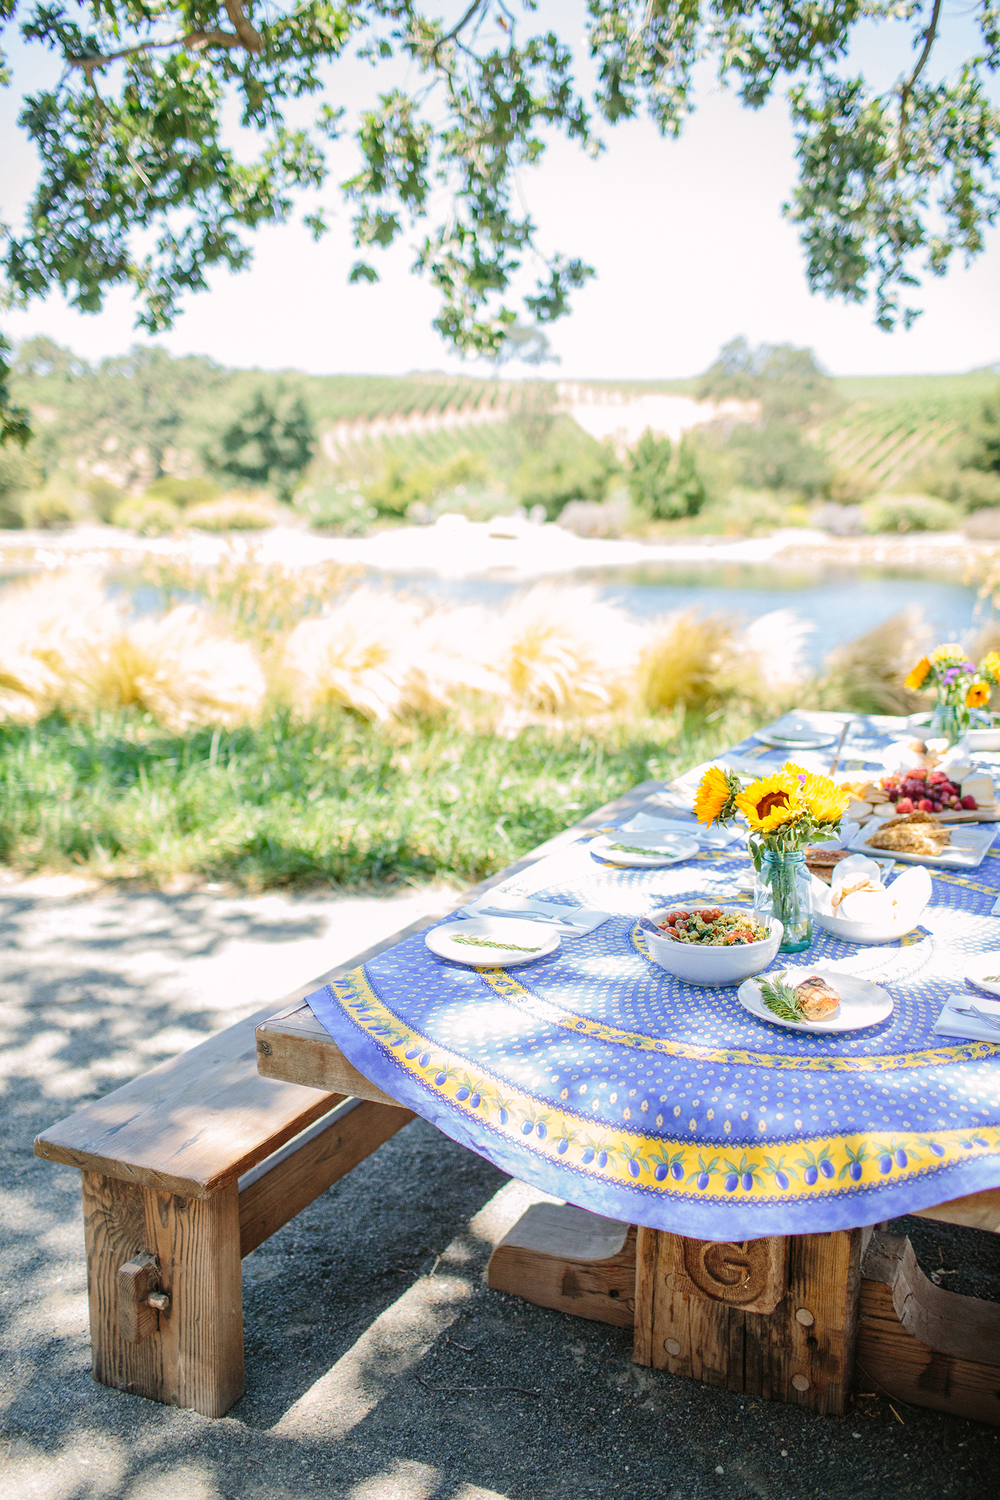 Wine Touring in Santa Ynez Valley | Coastal Concierge | Grassini Vineyard | Hilliard Bruce Vineyard | The Editor's Touch | Santa Barbara Trip Planning | I Heart My Groom Photography